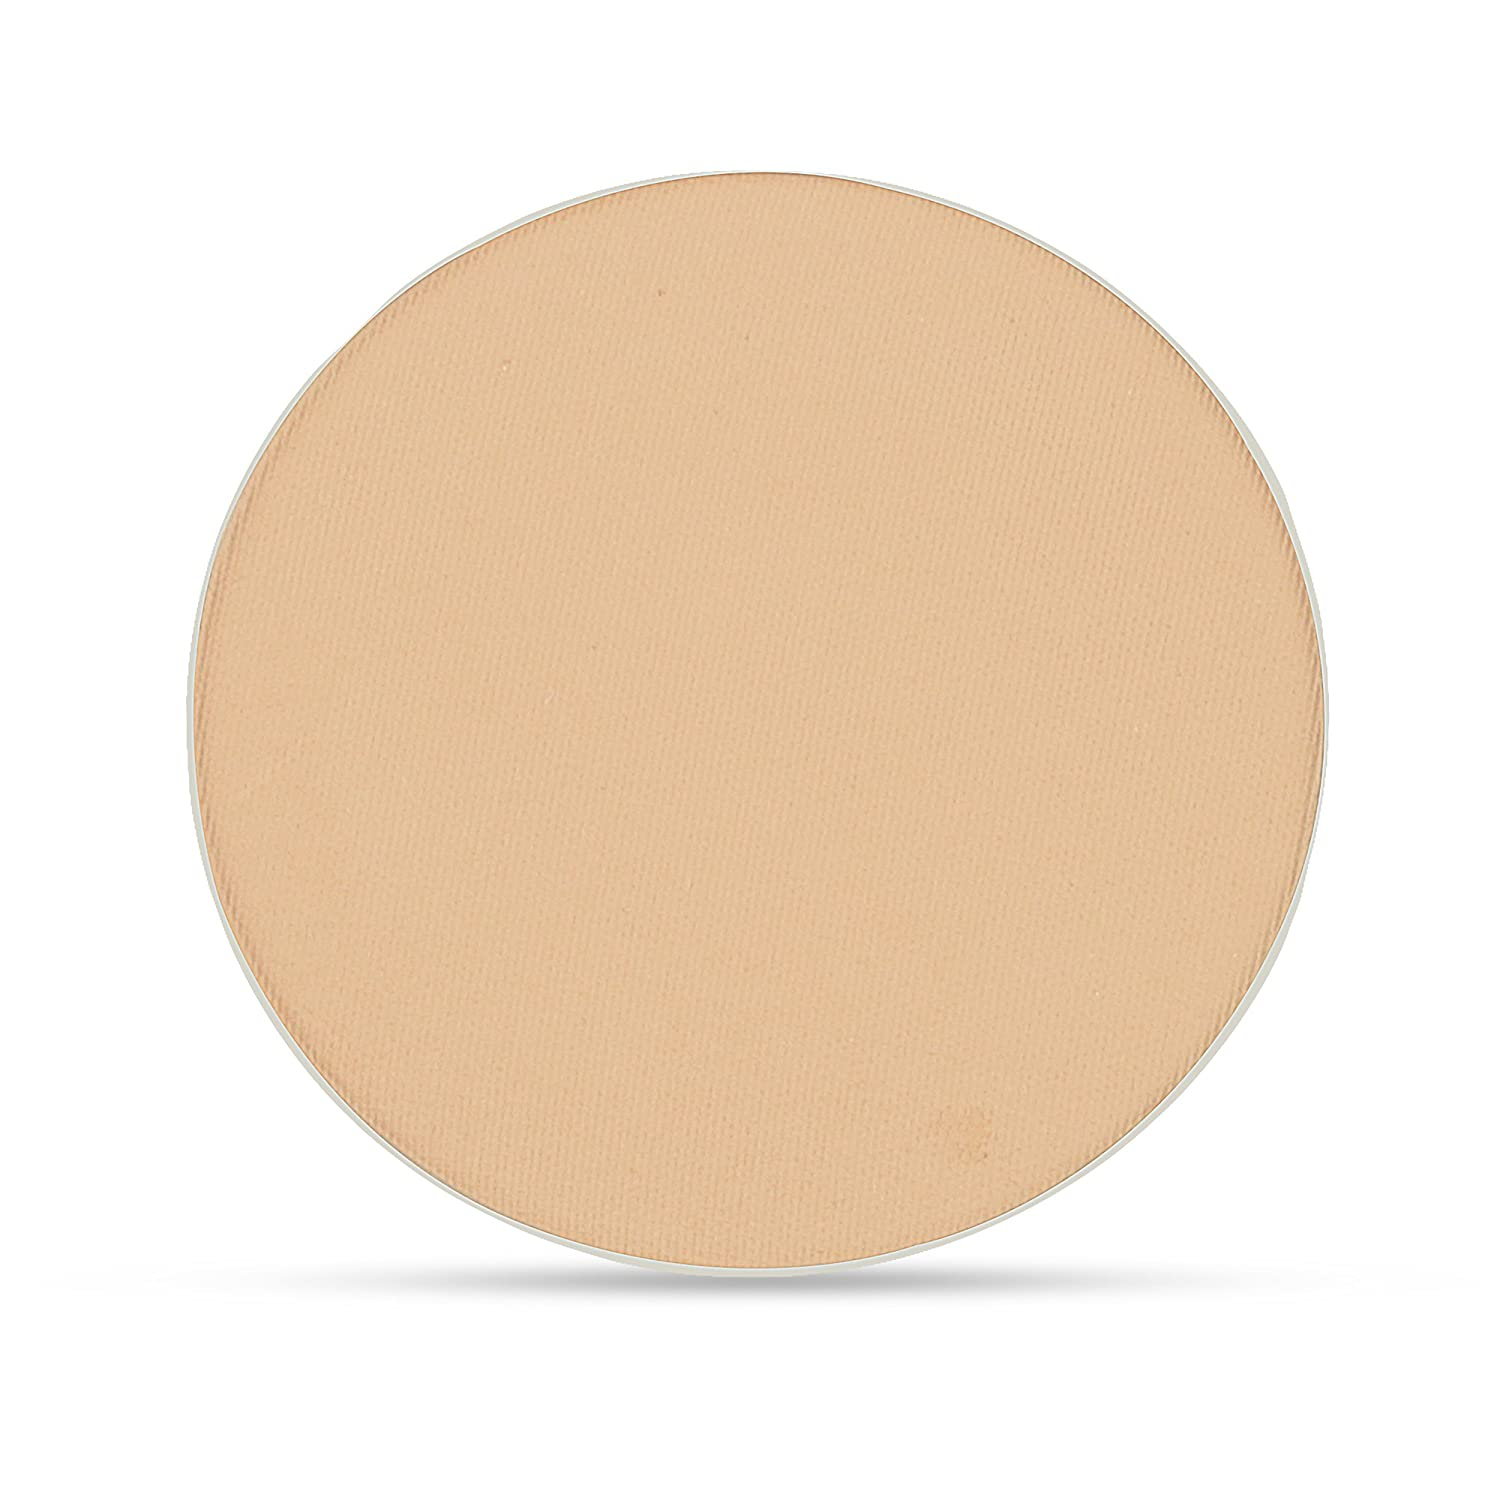 CLOVE + HALLOW Pressed Mineral Foundation - Natural Cruelty Free Vegan Foundation Makeup Powder - 05